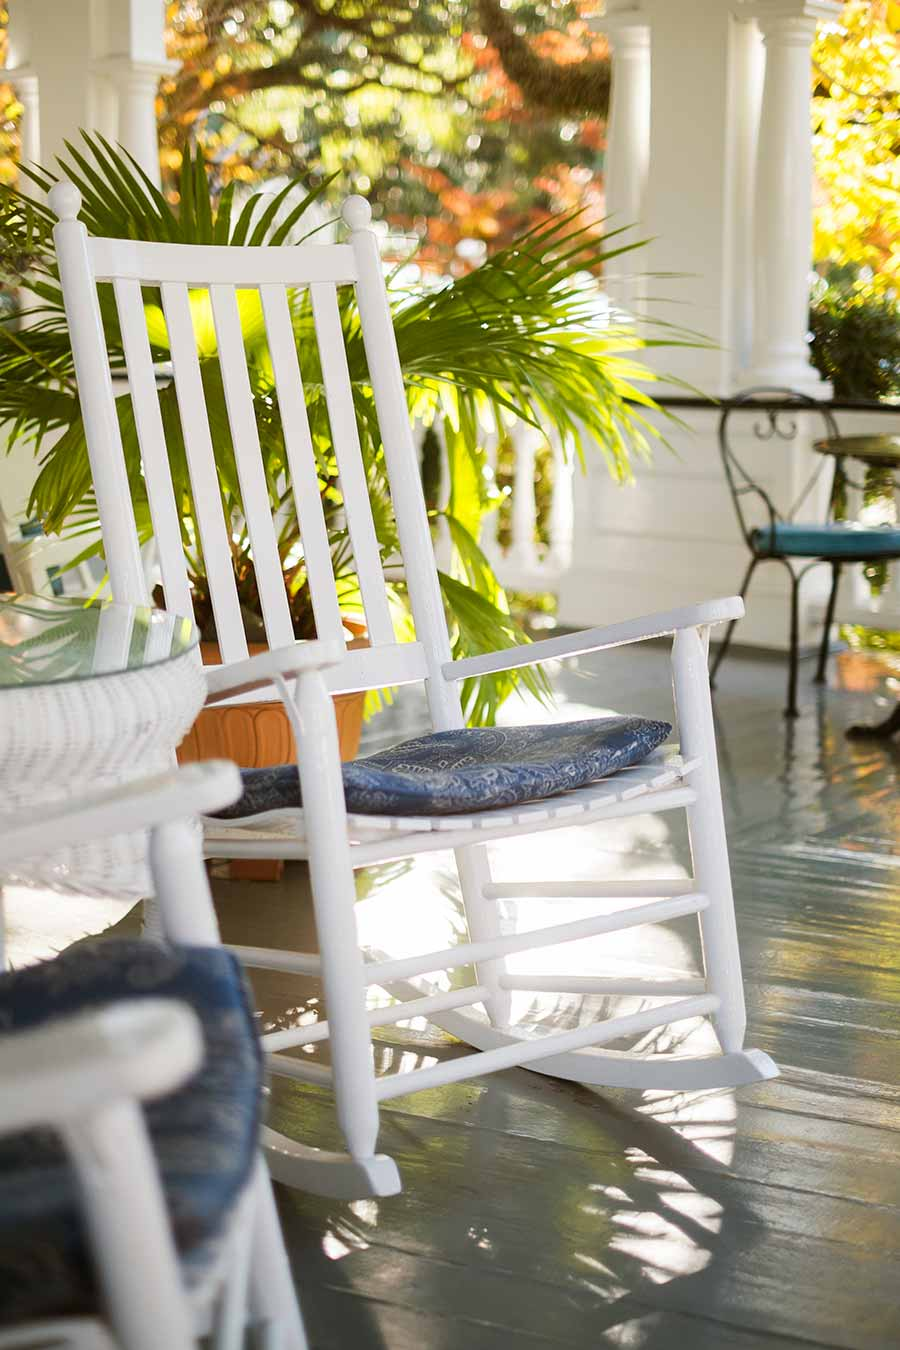 12 Front Porch Ideas For Houses That Need Some Southern Charm - We've curated a list of front porch ideas for houses that will add comfort, style, and, of course, the charm that is as distinctly southern as iced tea and homemade biscuits.